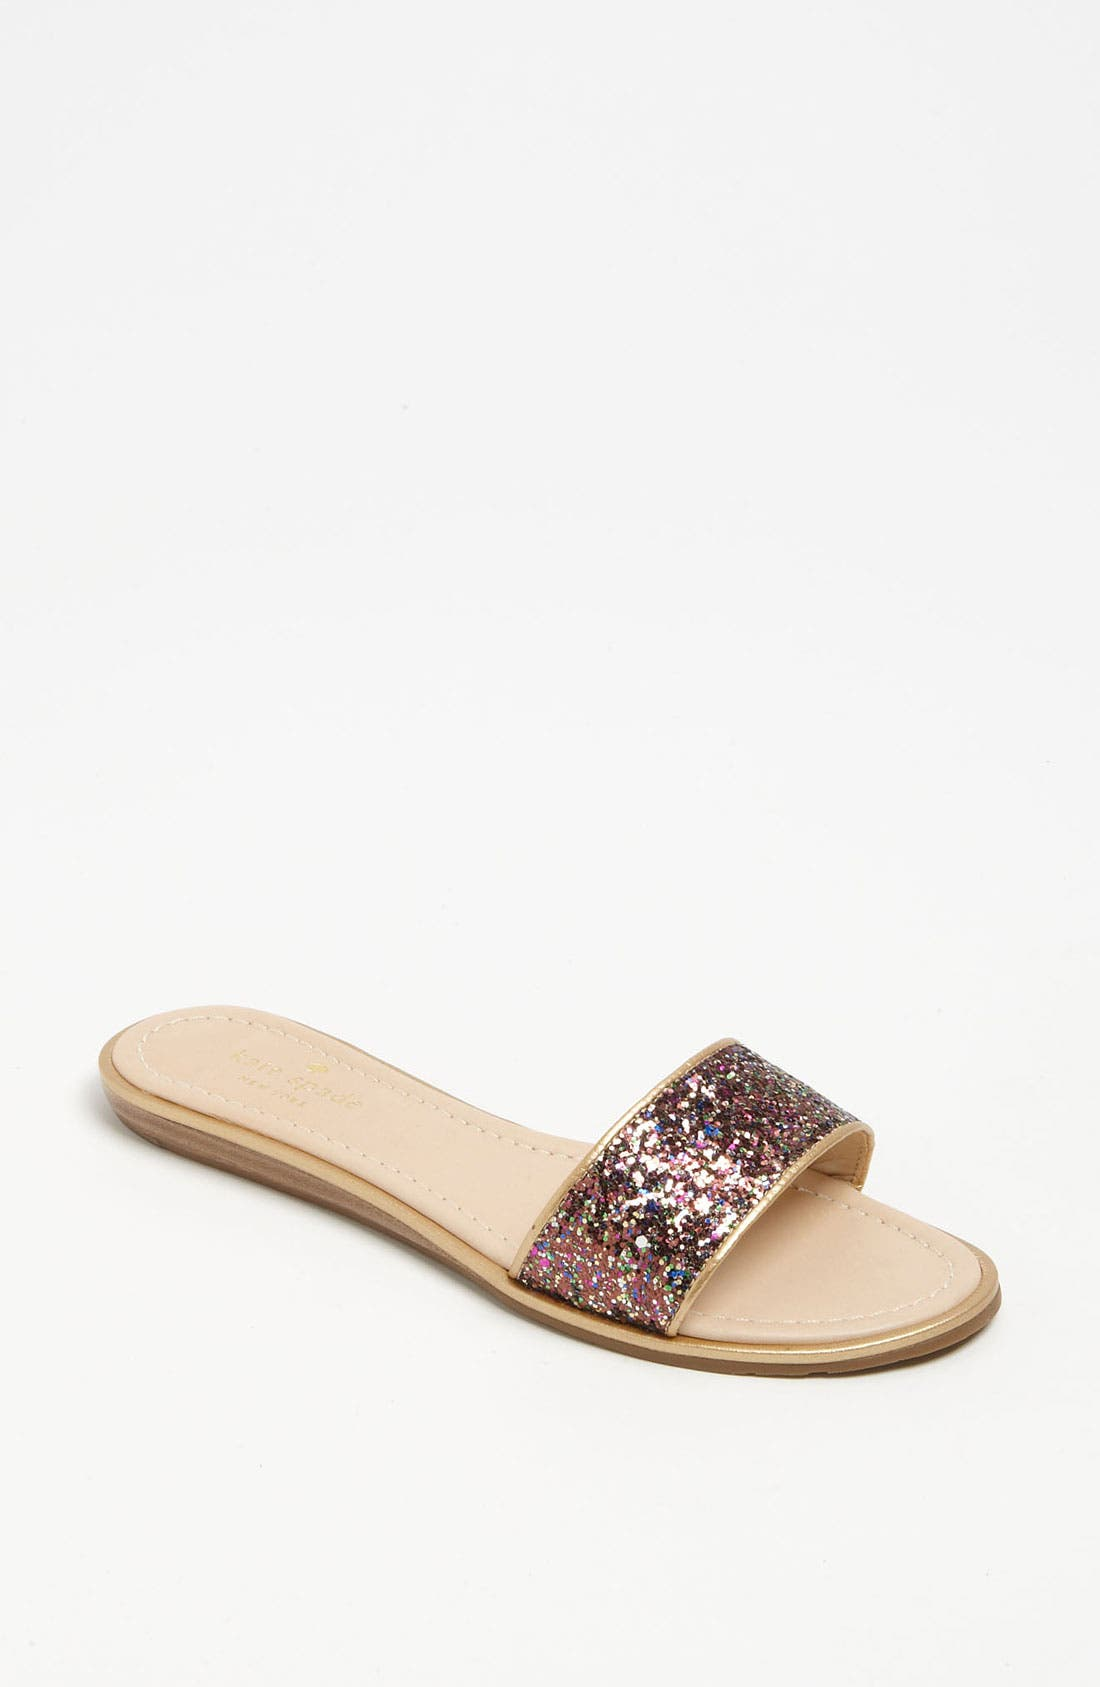 Alternate Image 1 Selected - kate spade new york 'tulip' sandal